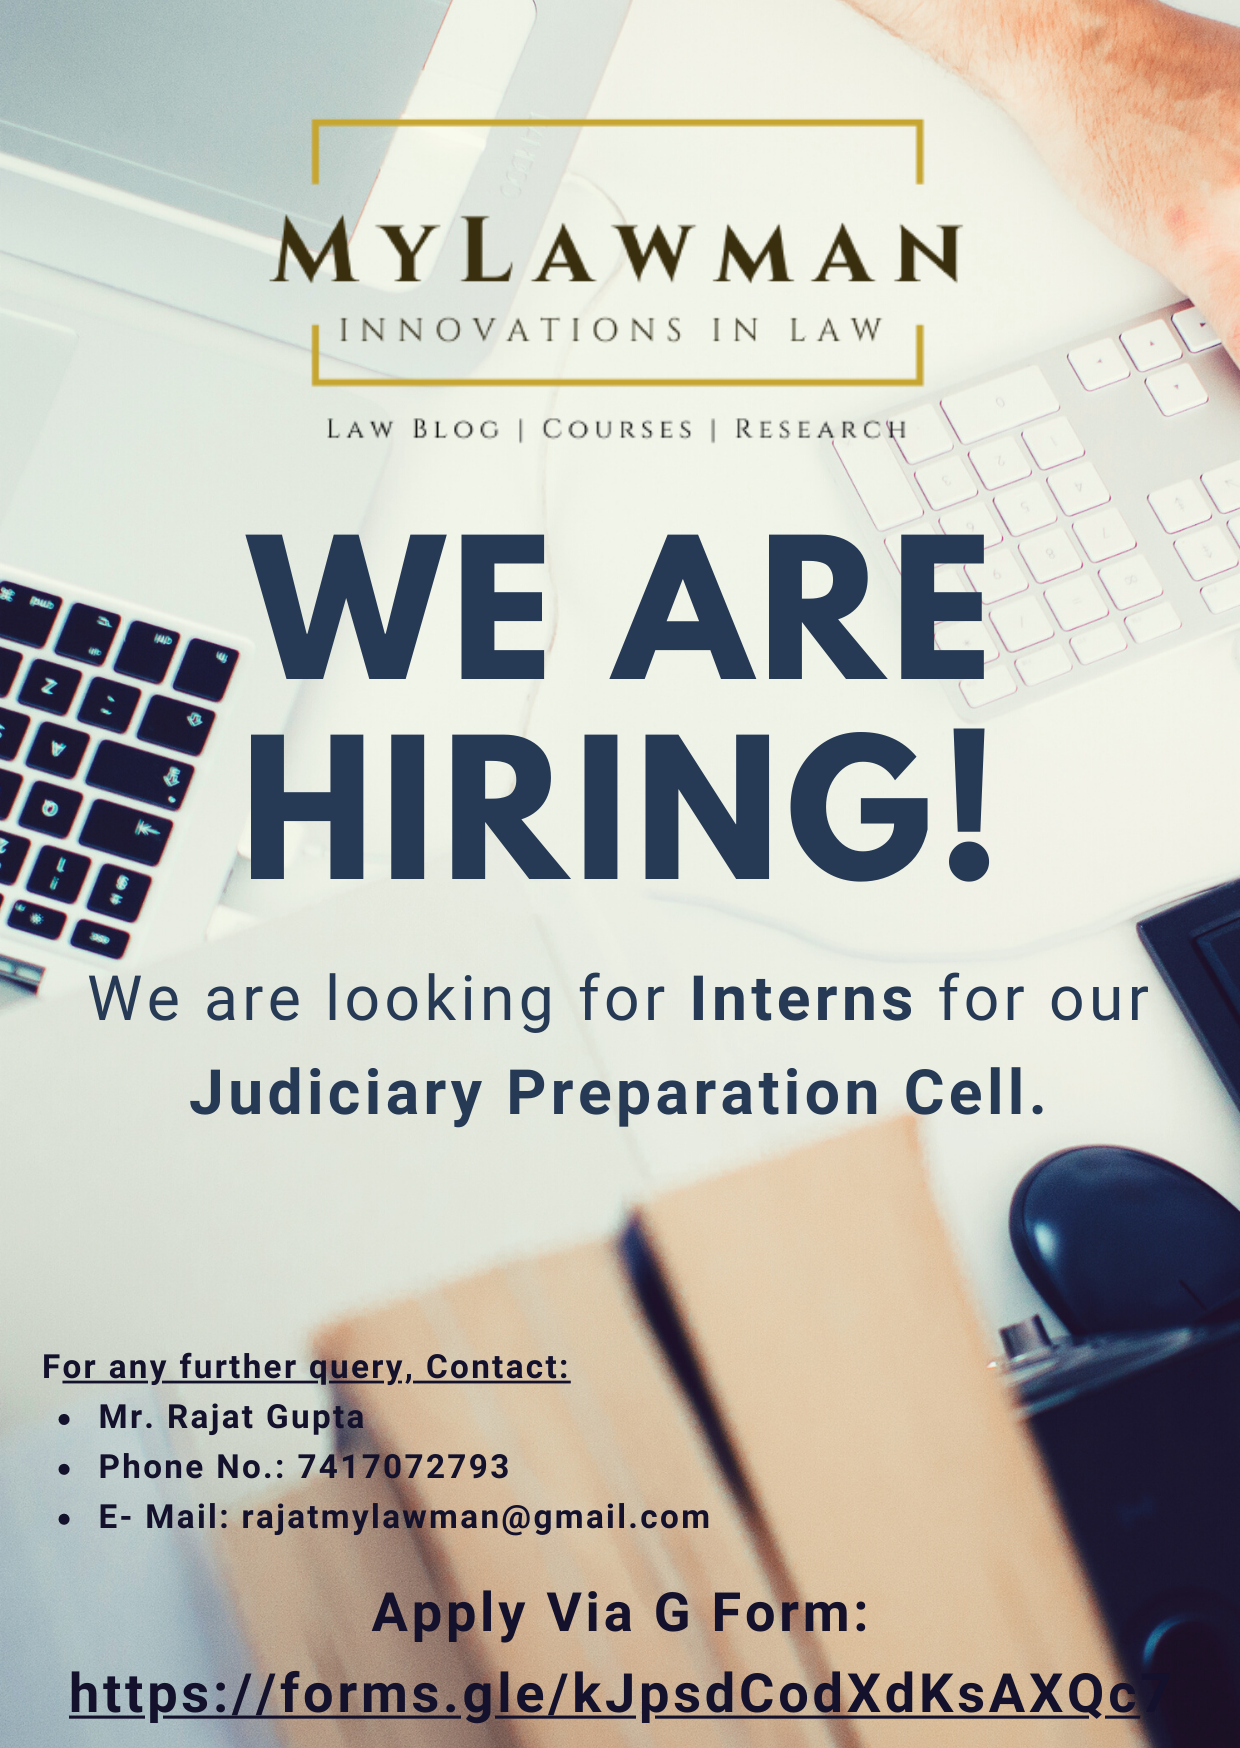 [Internship Opportunity] Call for Interns for Judiciary Preparation Cell at MyLawman [Apply by 24 August 2021]